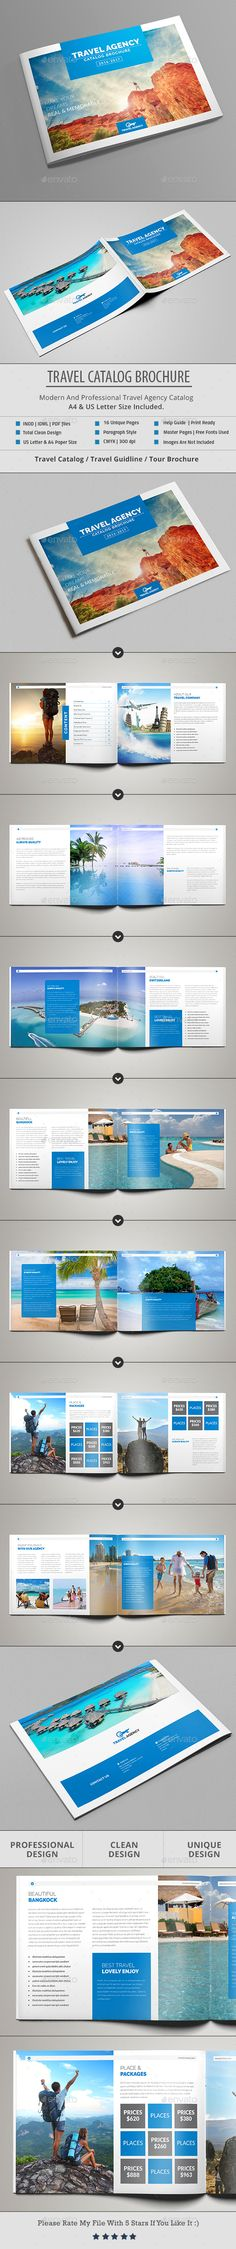 Holiday Travel Brochure Design V  Brochure Templates